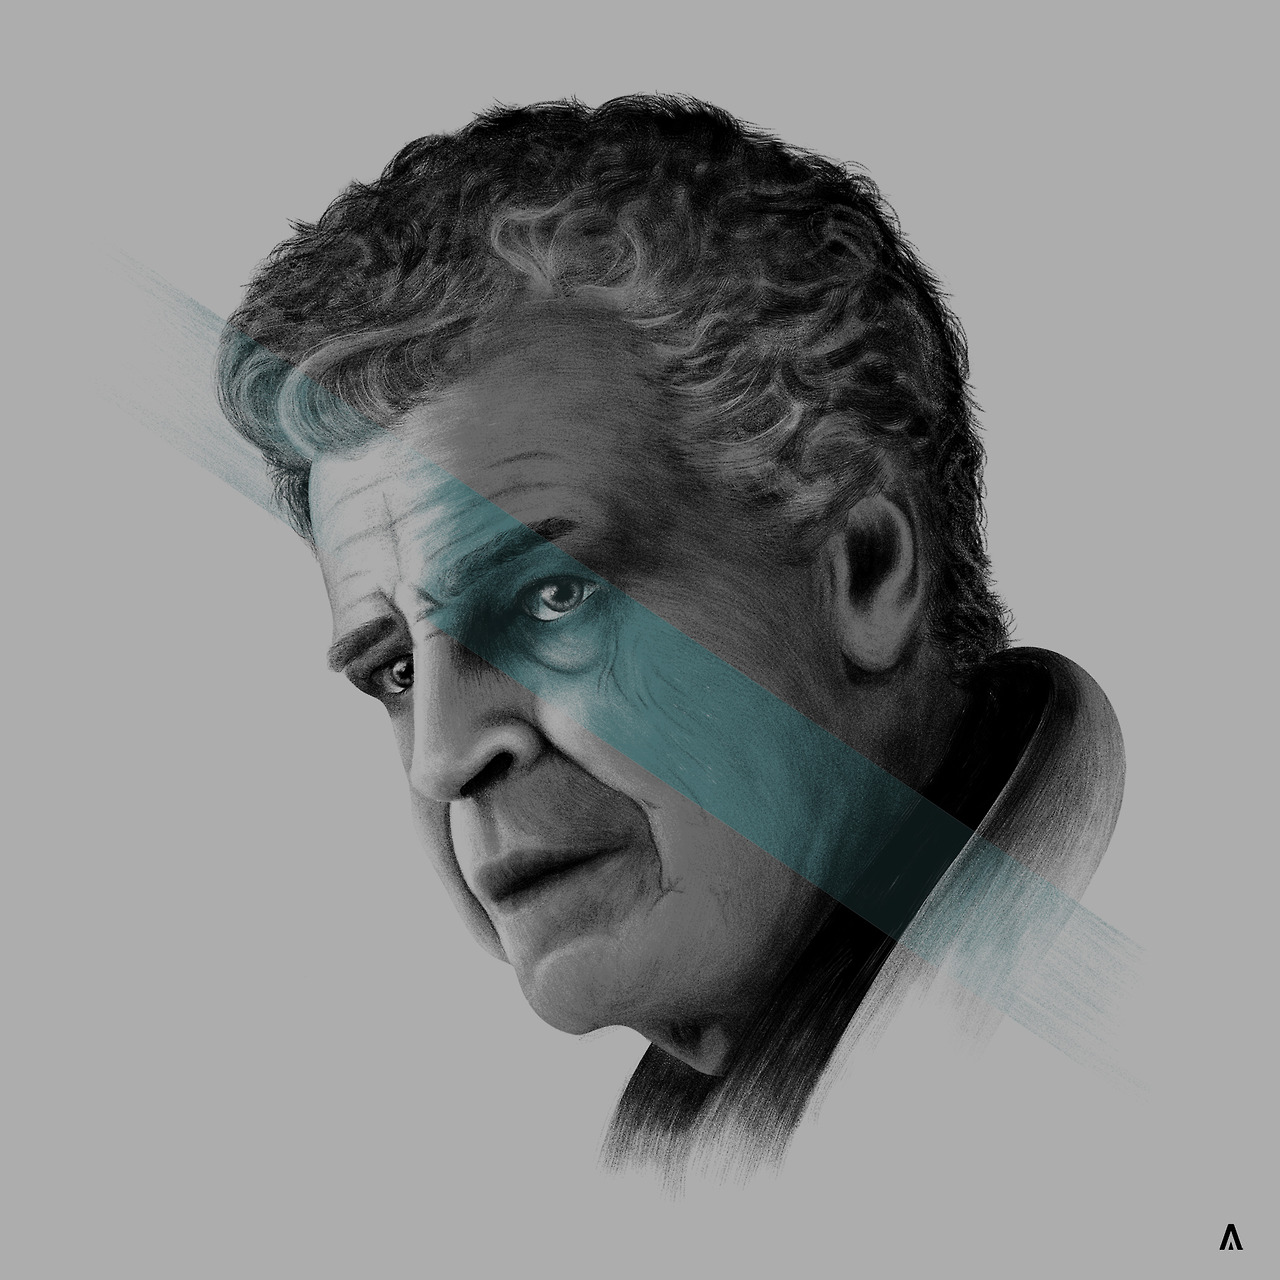 Here it is! My newest Character Portrait in the series. This time its Walter Bishop from the very awesome Sci-Fi Tv Series 'Fringe'. I had an immensely fun time doing this one cause it partially meant I had could watch the show again!    This character has inspired me to want to do a triptych portrait set of the 3 main leads. The idea behind this portrait could only be fully explained if I can do the other 2, but its not vital! I'm trying to decide what I want to do!    Would love to one day get these printed out and into the hands of fans but we will just have to see how we go.   Thanks everybody!